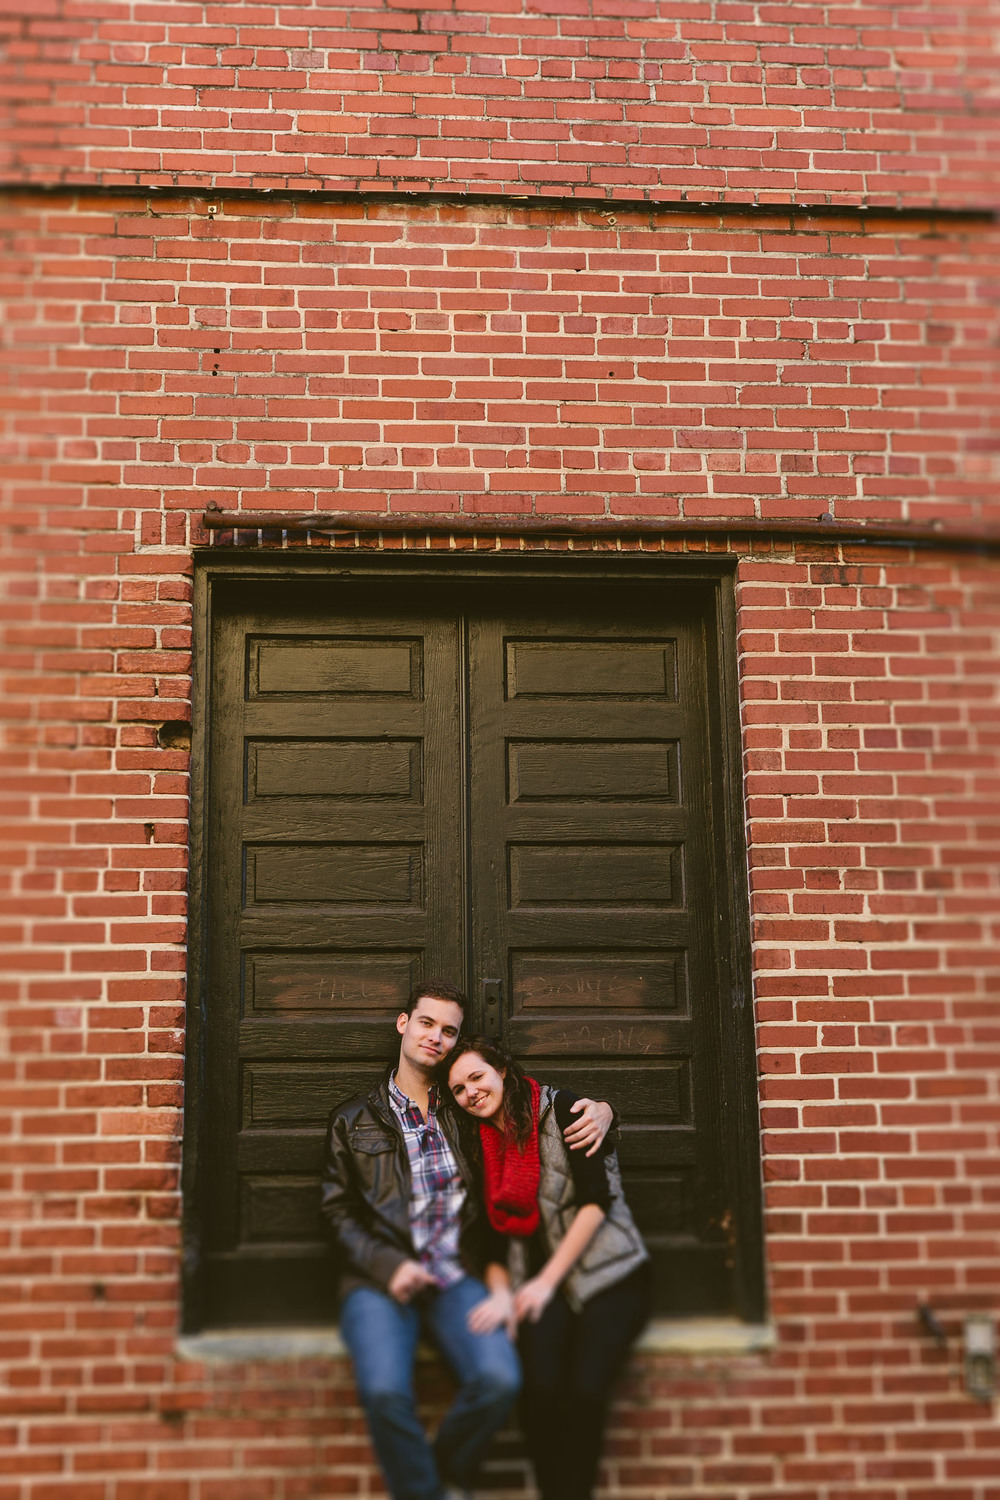 Atlanta-Engagement-Photographer-Kathryn-McCrary-Photography-Piedmont-Park-Virginia-Highlands-Fall-Engagement-Shoot-6.jpg